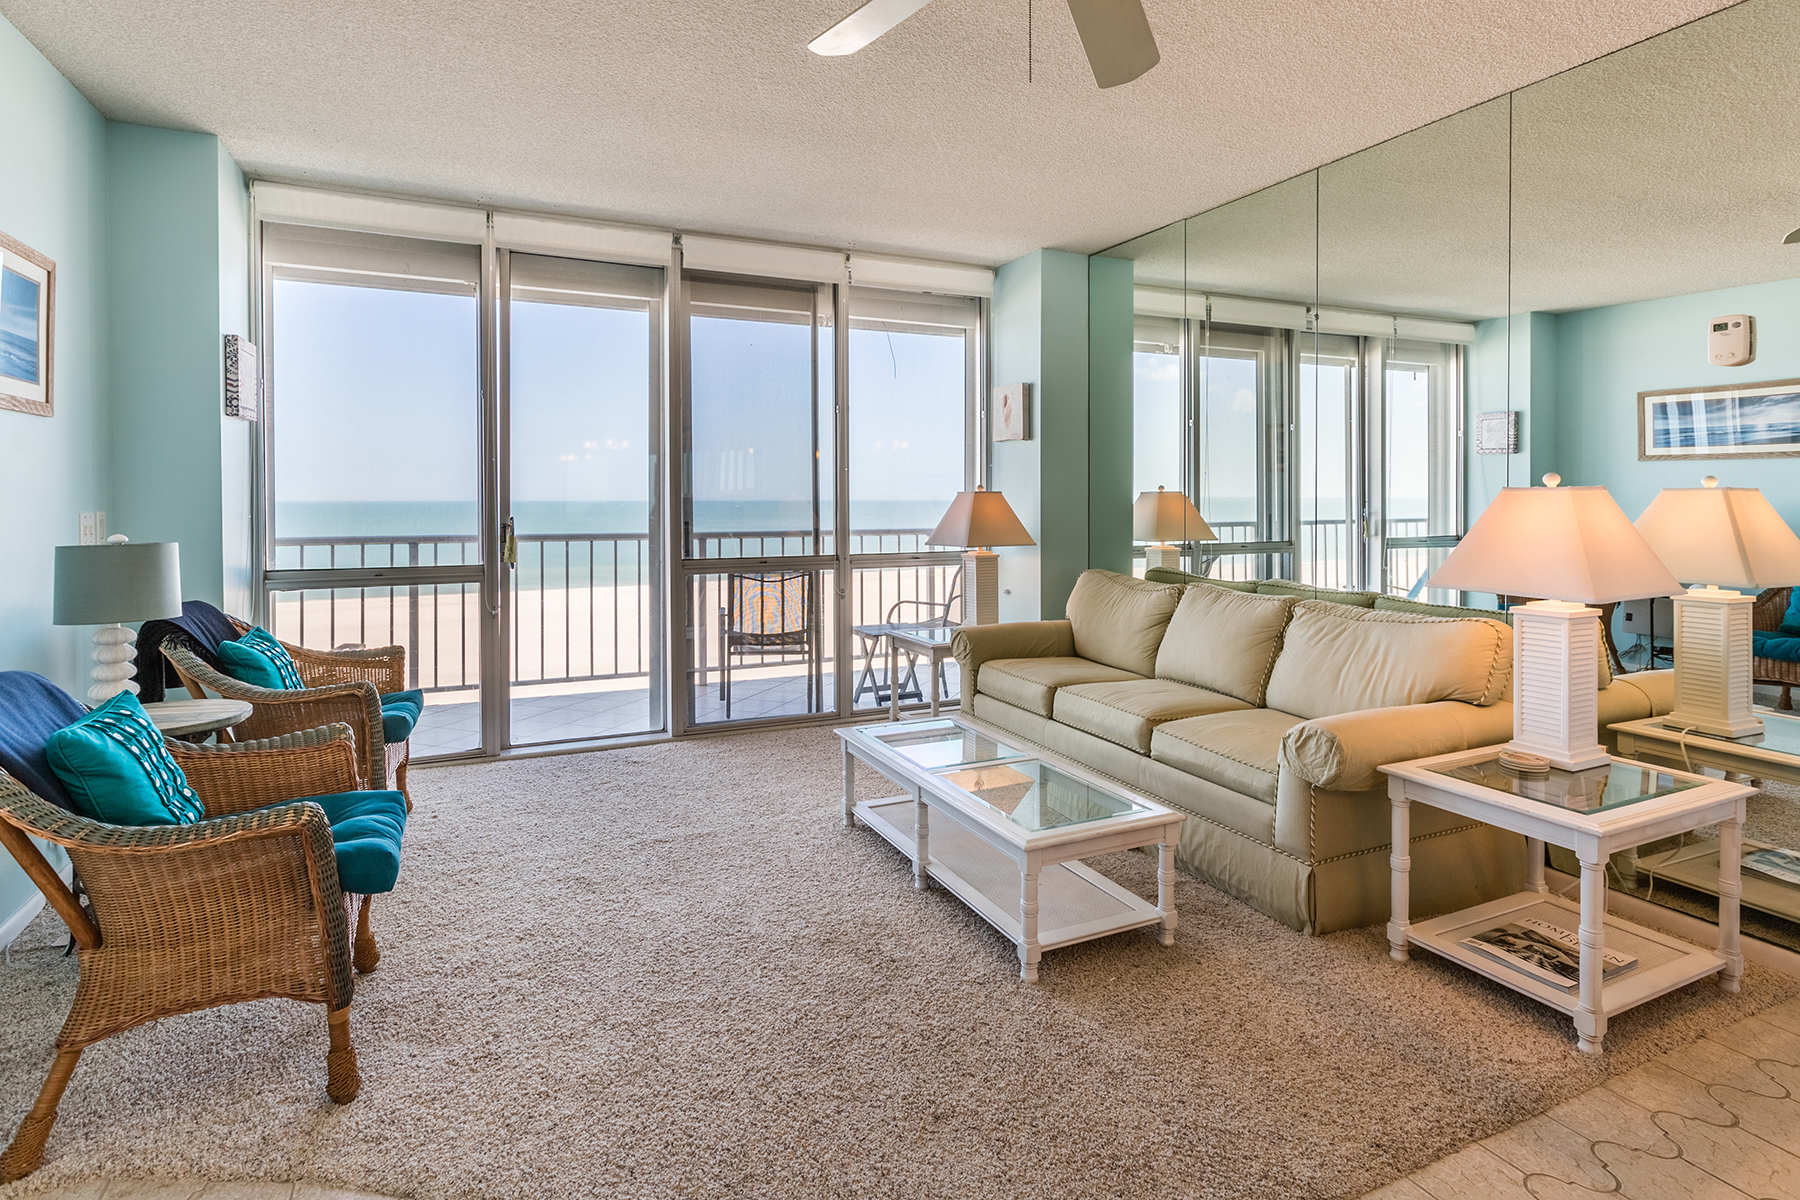 Condominium for Sale at MARCO ISLAND 140 Seaview Ct 1102S, Marco Island, Florida 34145 United States